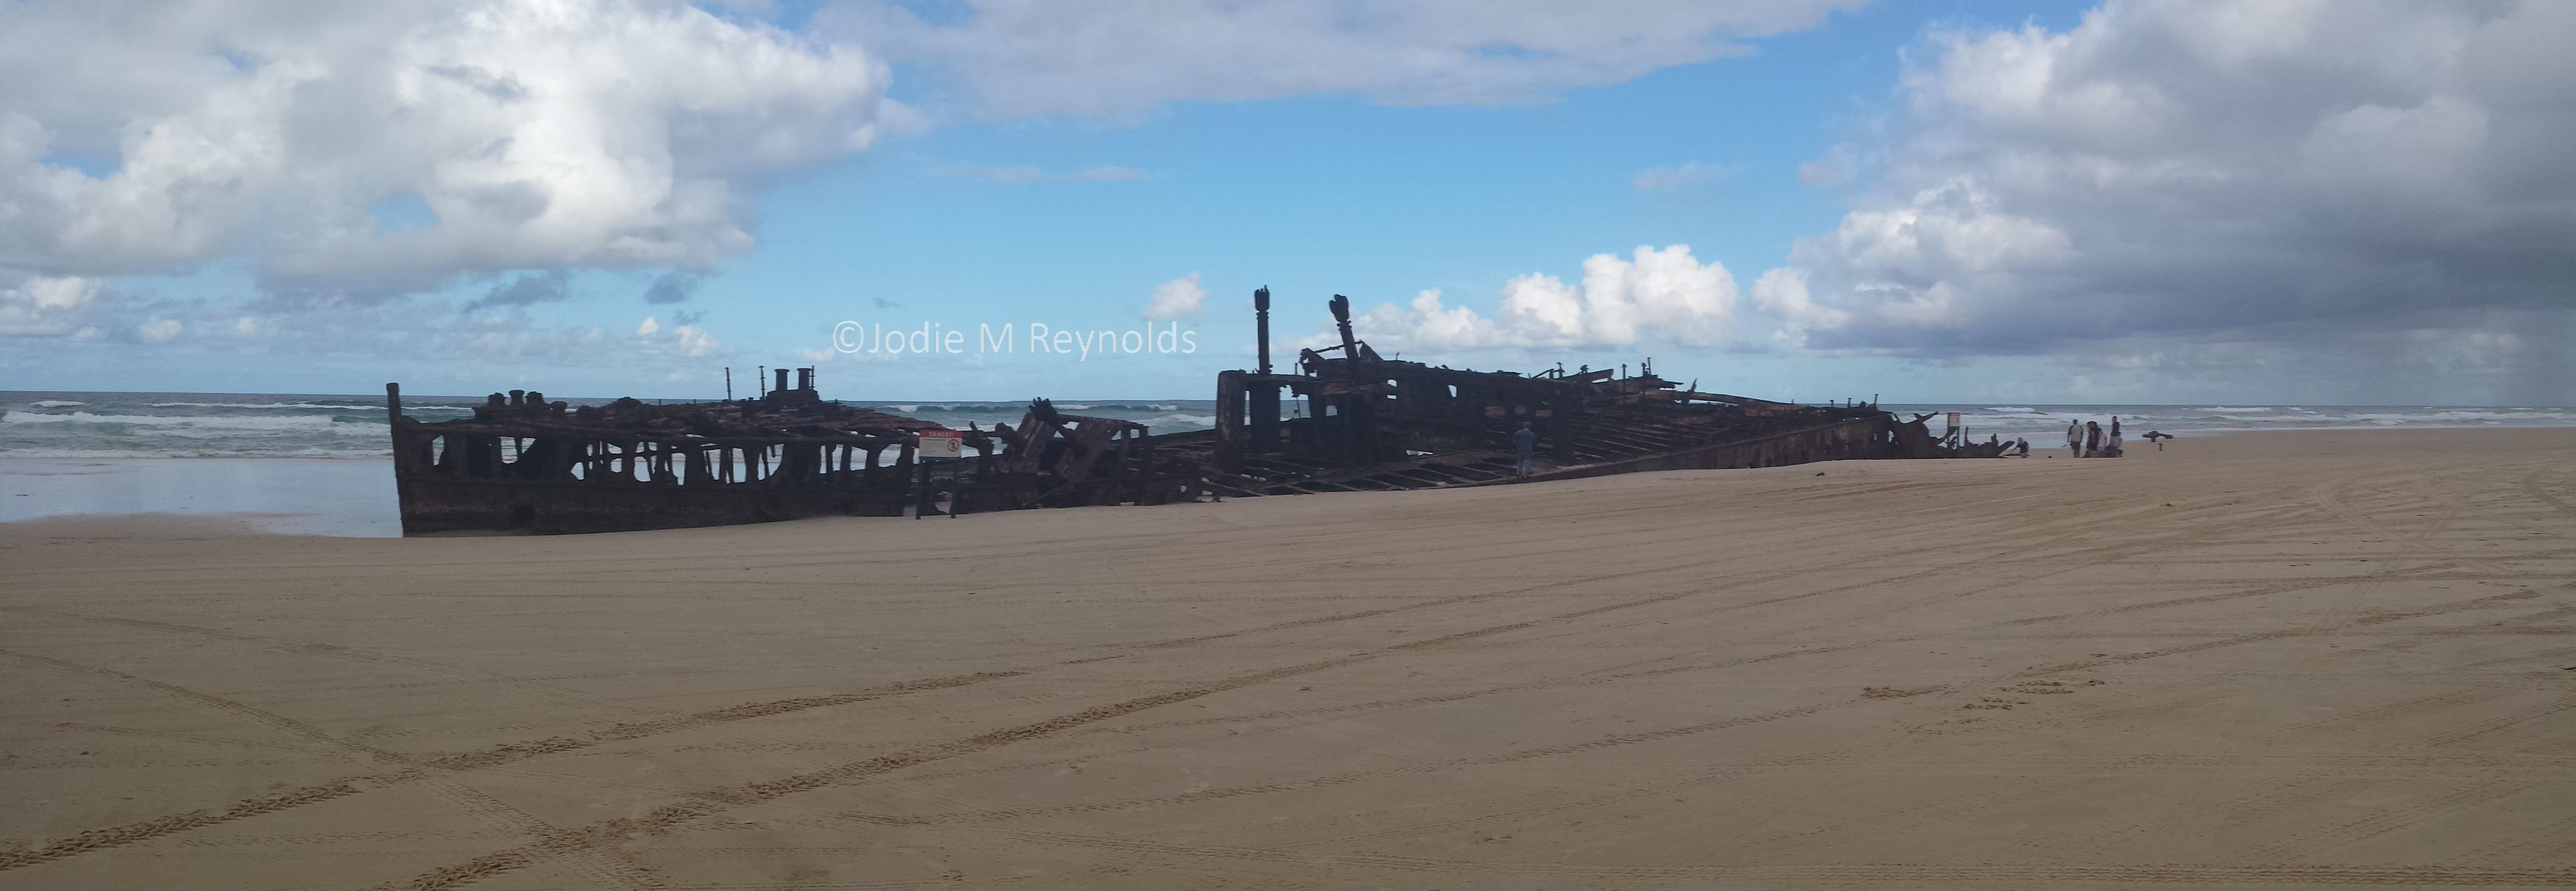 The SS Maheno wreck on Fraser Island, ran aground here in 1935. Today, it attracts quite the number of tourists!